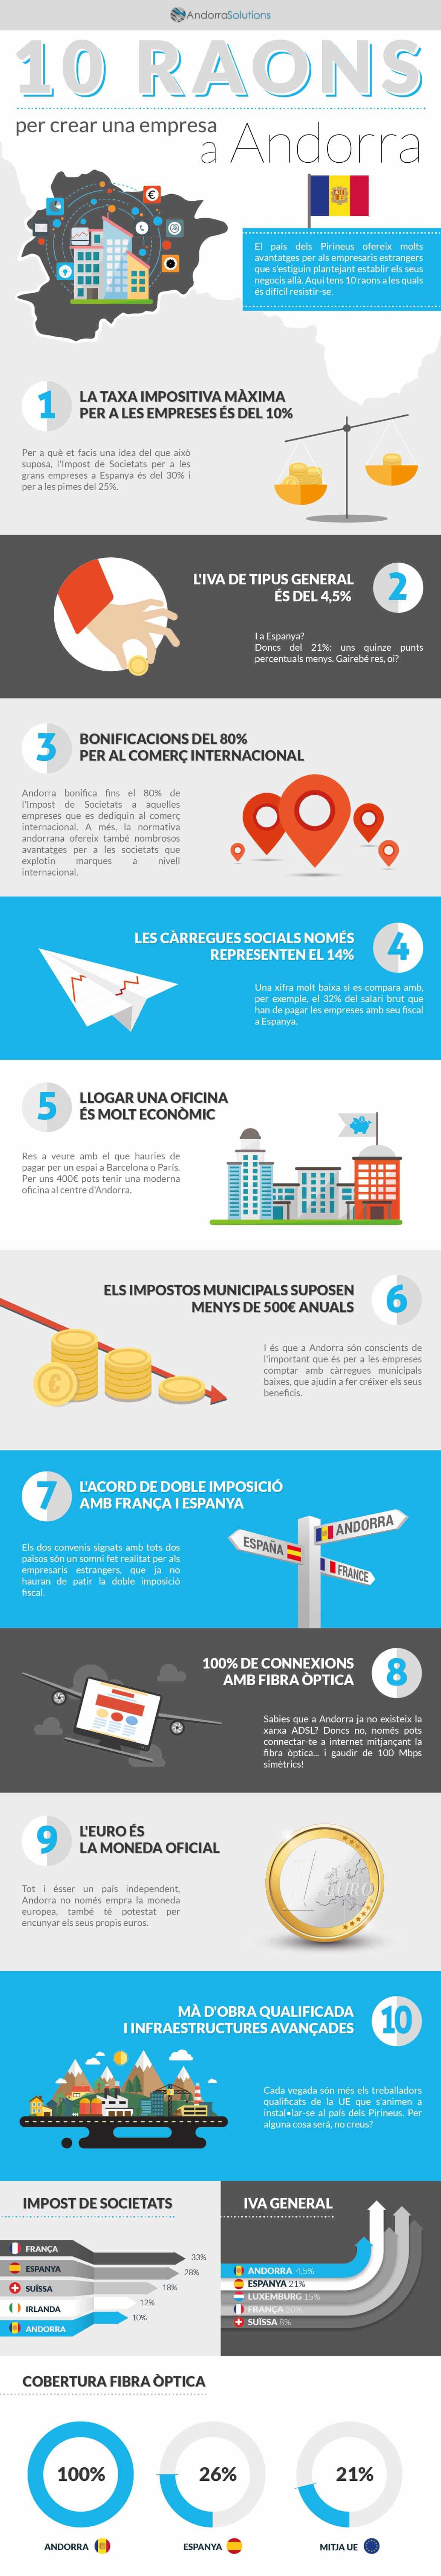 004_AndorraSolutions_Infografía_CAT